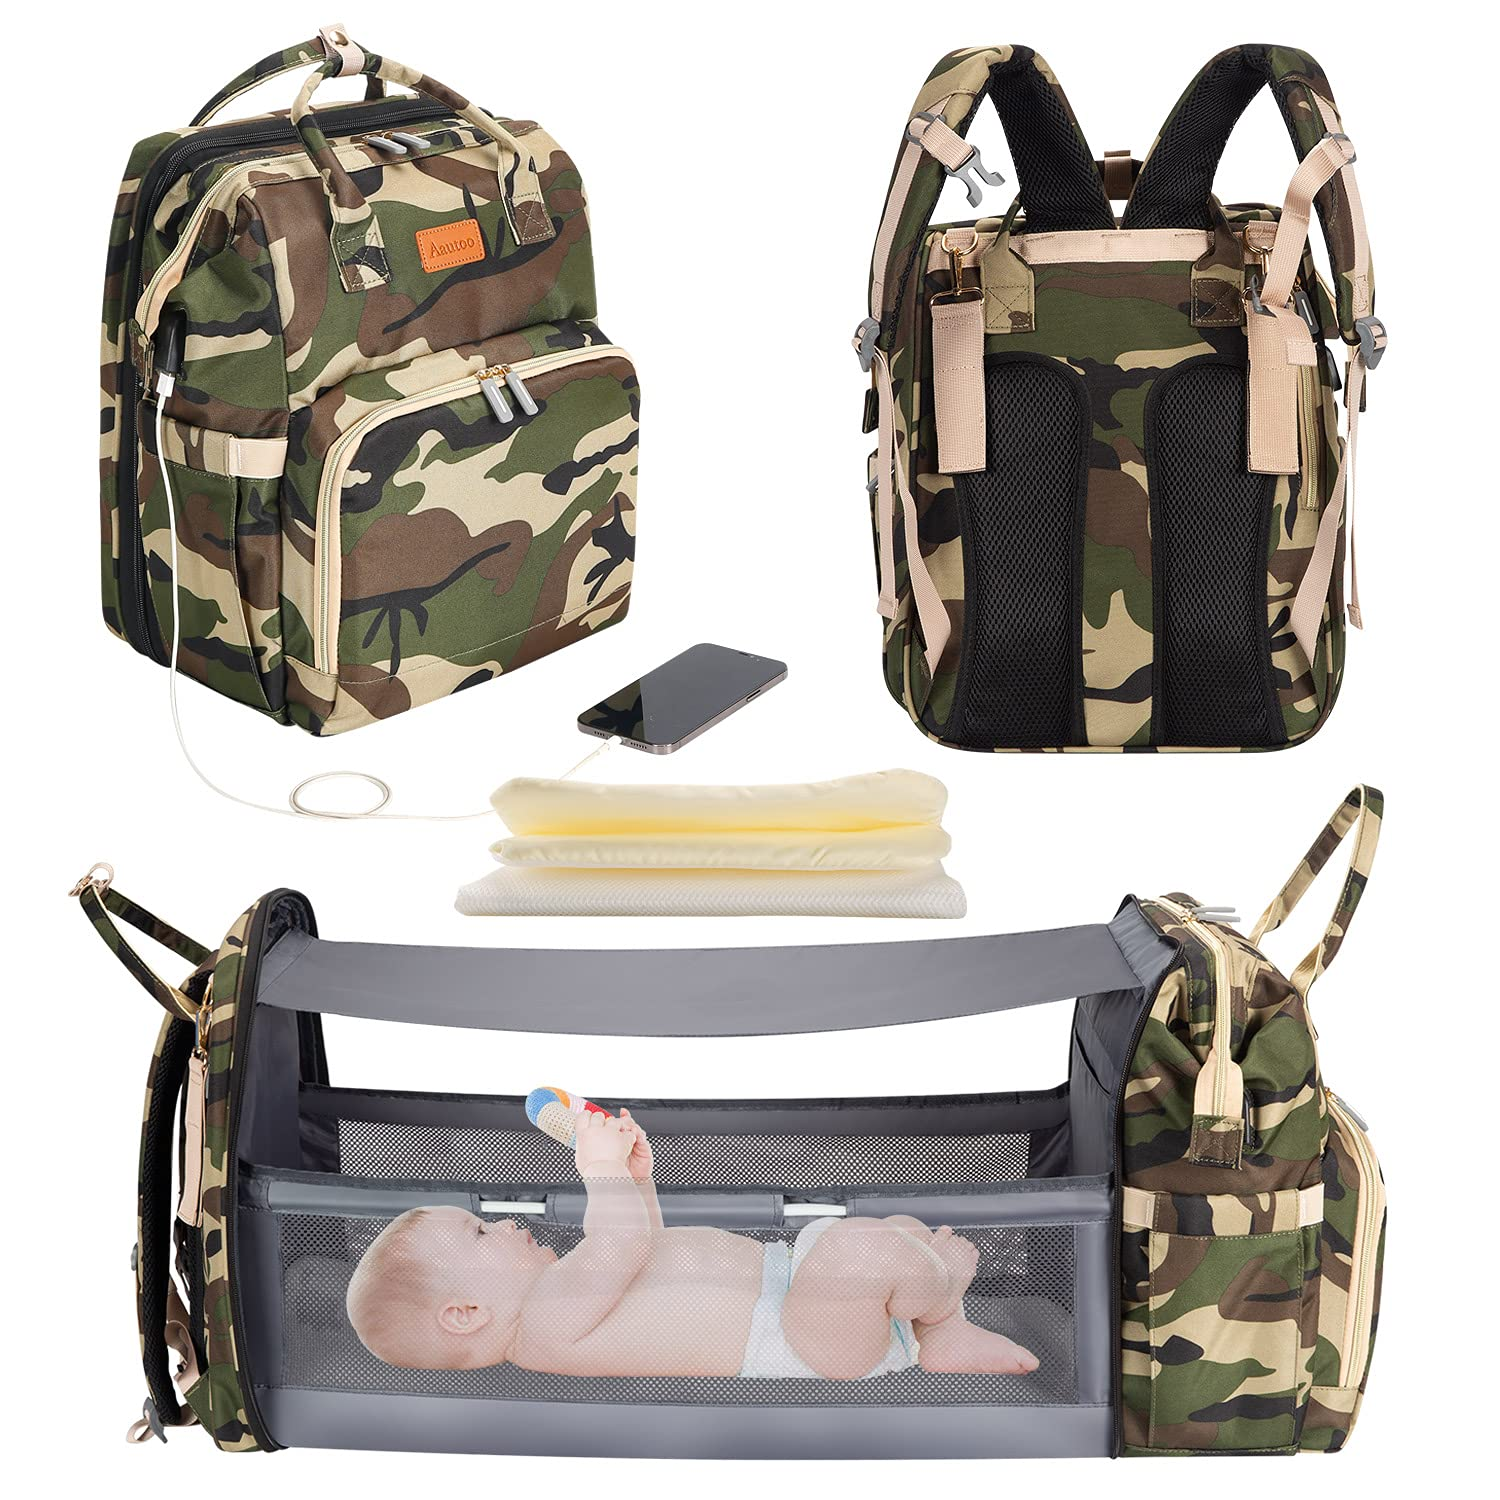 5 in 1 Diaper Bag Backpack Portable Crib Mummy Bag Bed Waterproof Travel Bag with USB Charge Baby Changing Bag